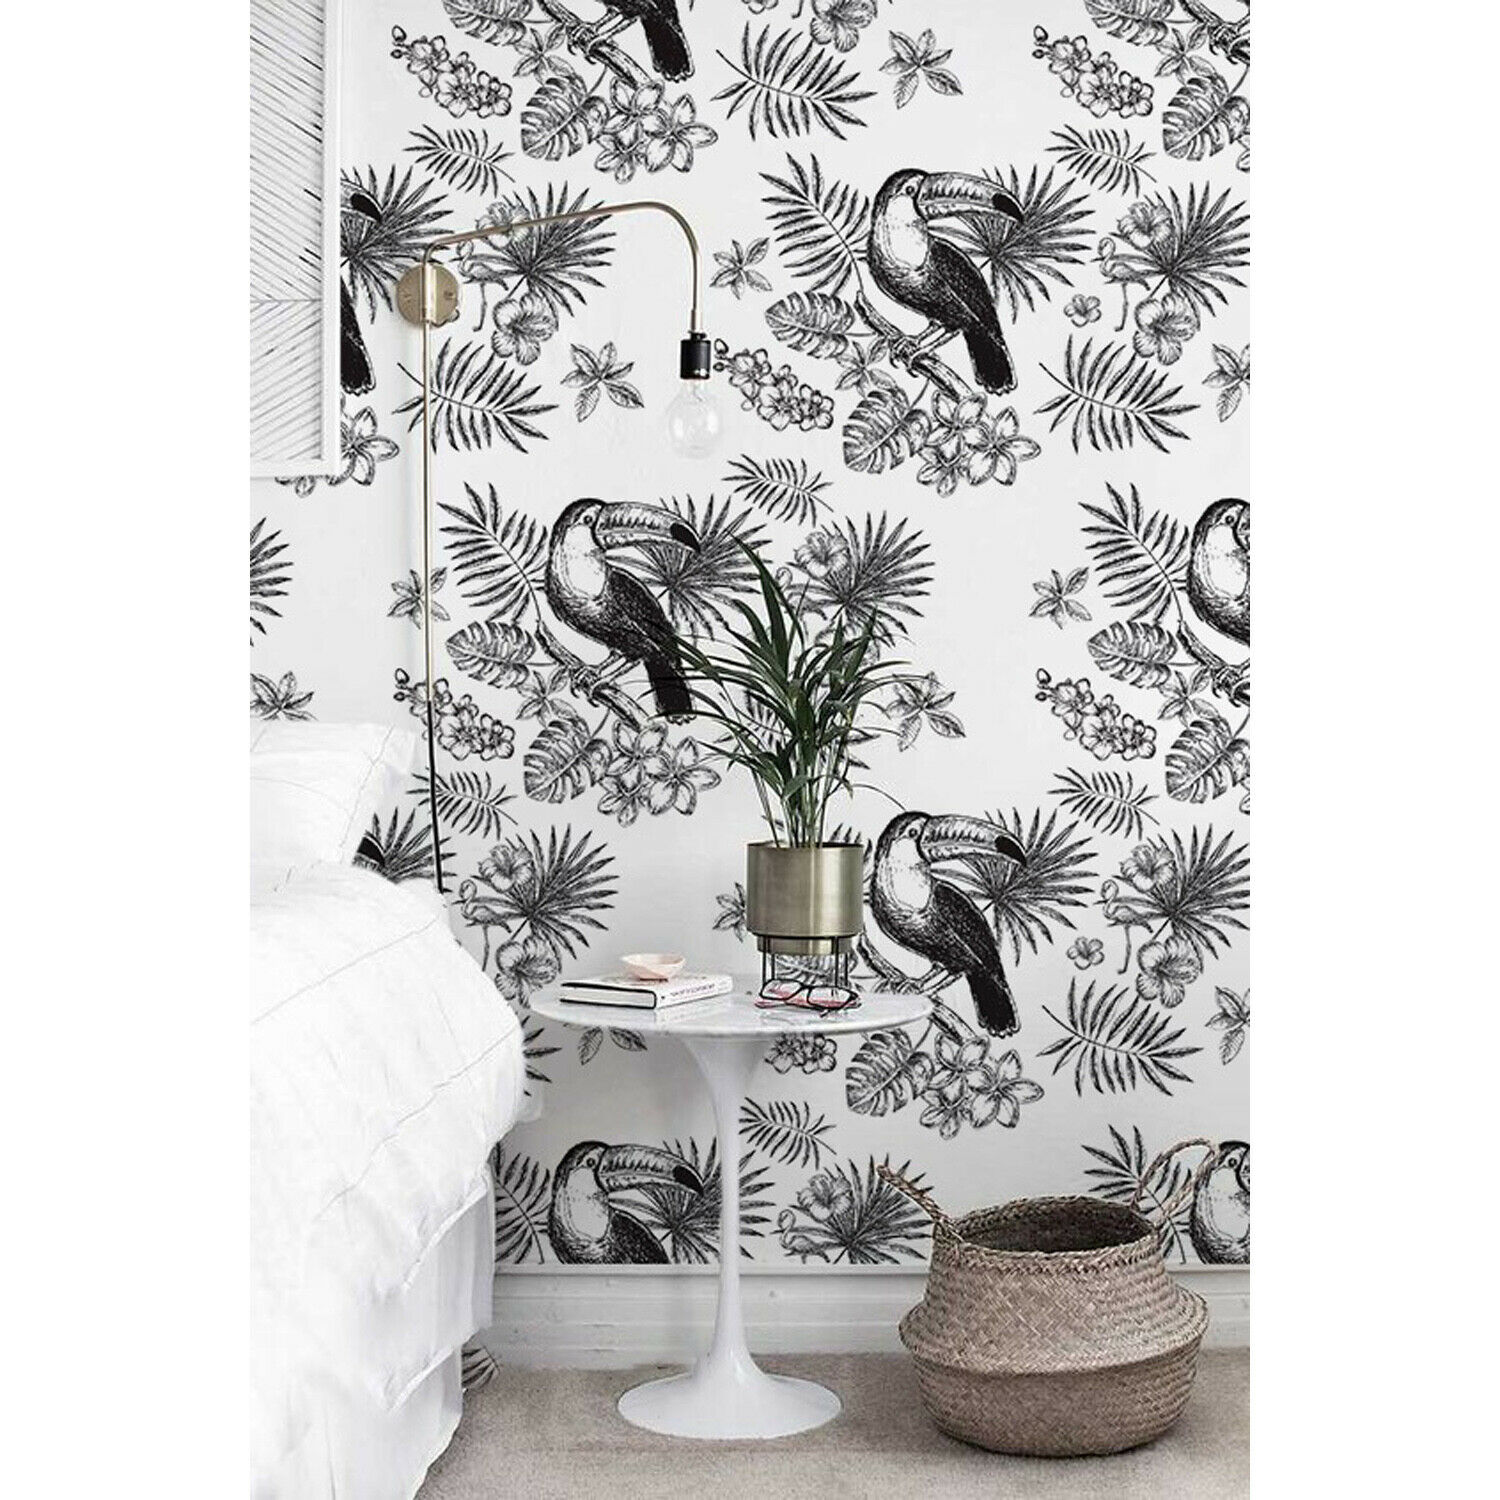 Removable wallpaper Tropical Toucan Wall Mural Self adhesive Floral Wall Decor